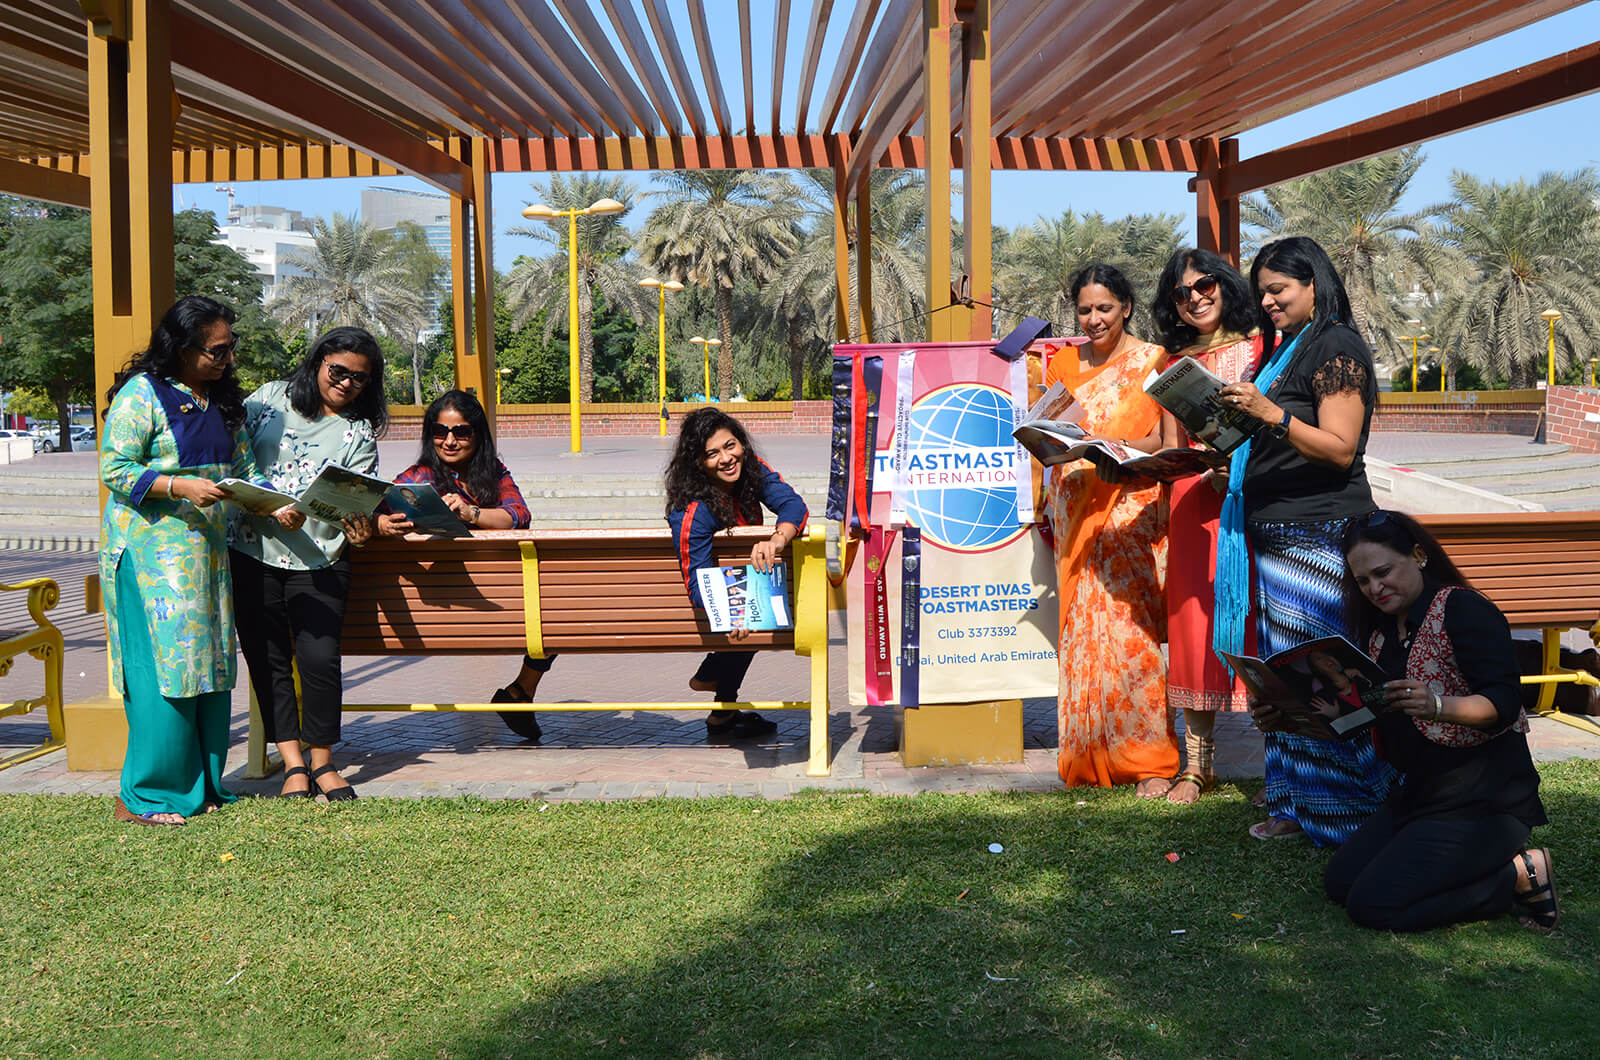 Members of the Desert Divas club of Dubai, United Arab Emirates, relax in the shade while hosting a meeting at a local park.